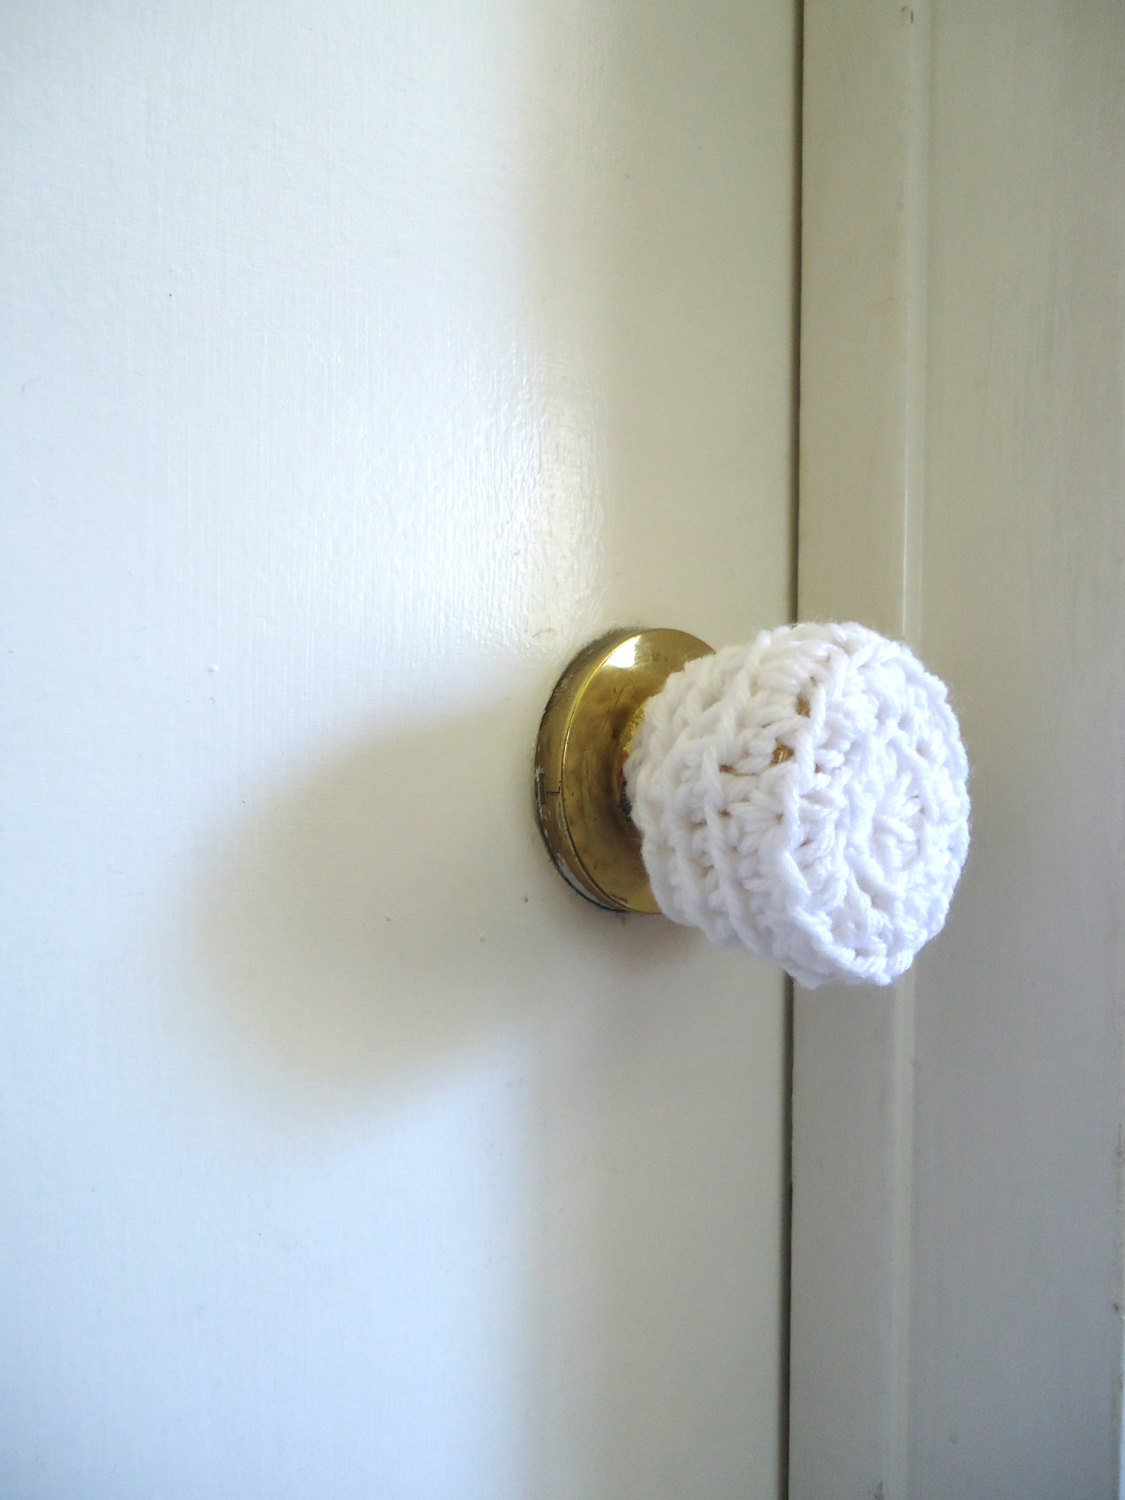 door knob safety covers photo - 5